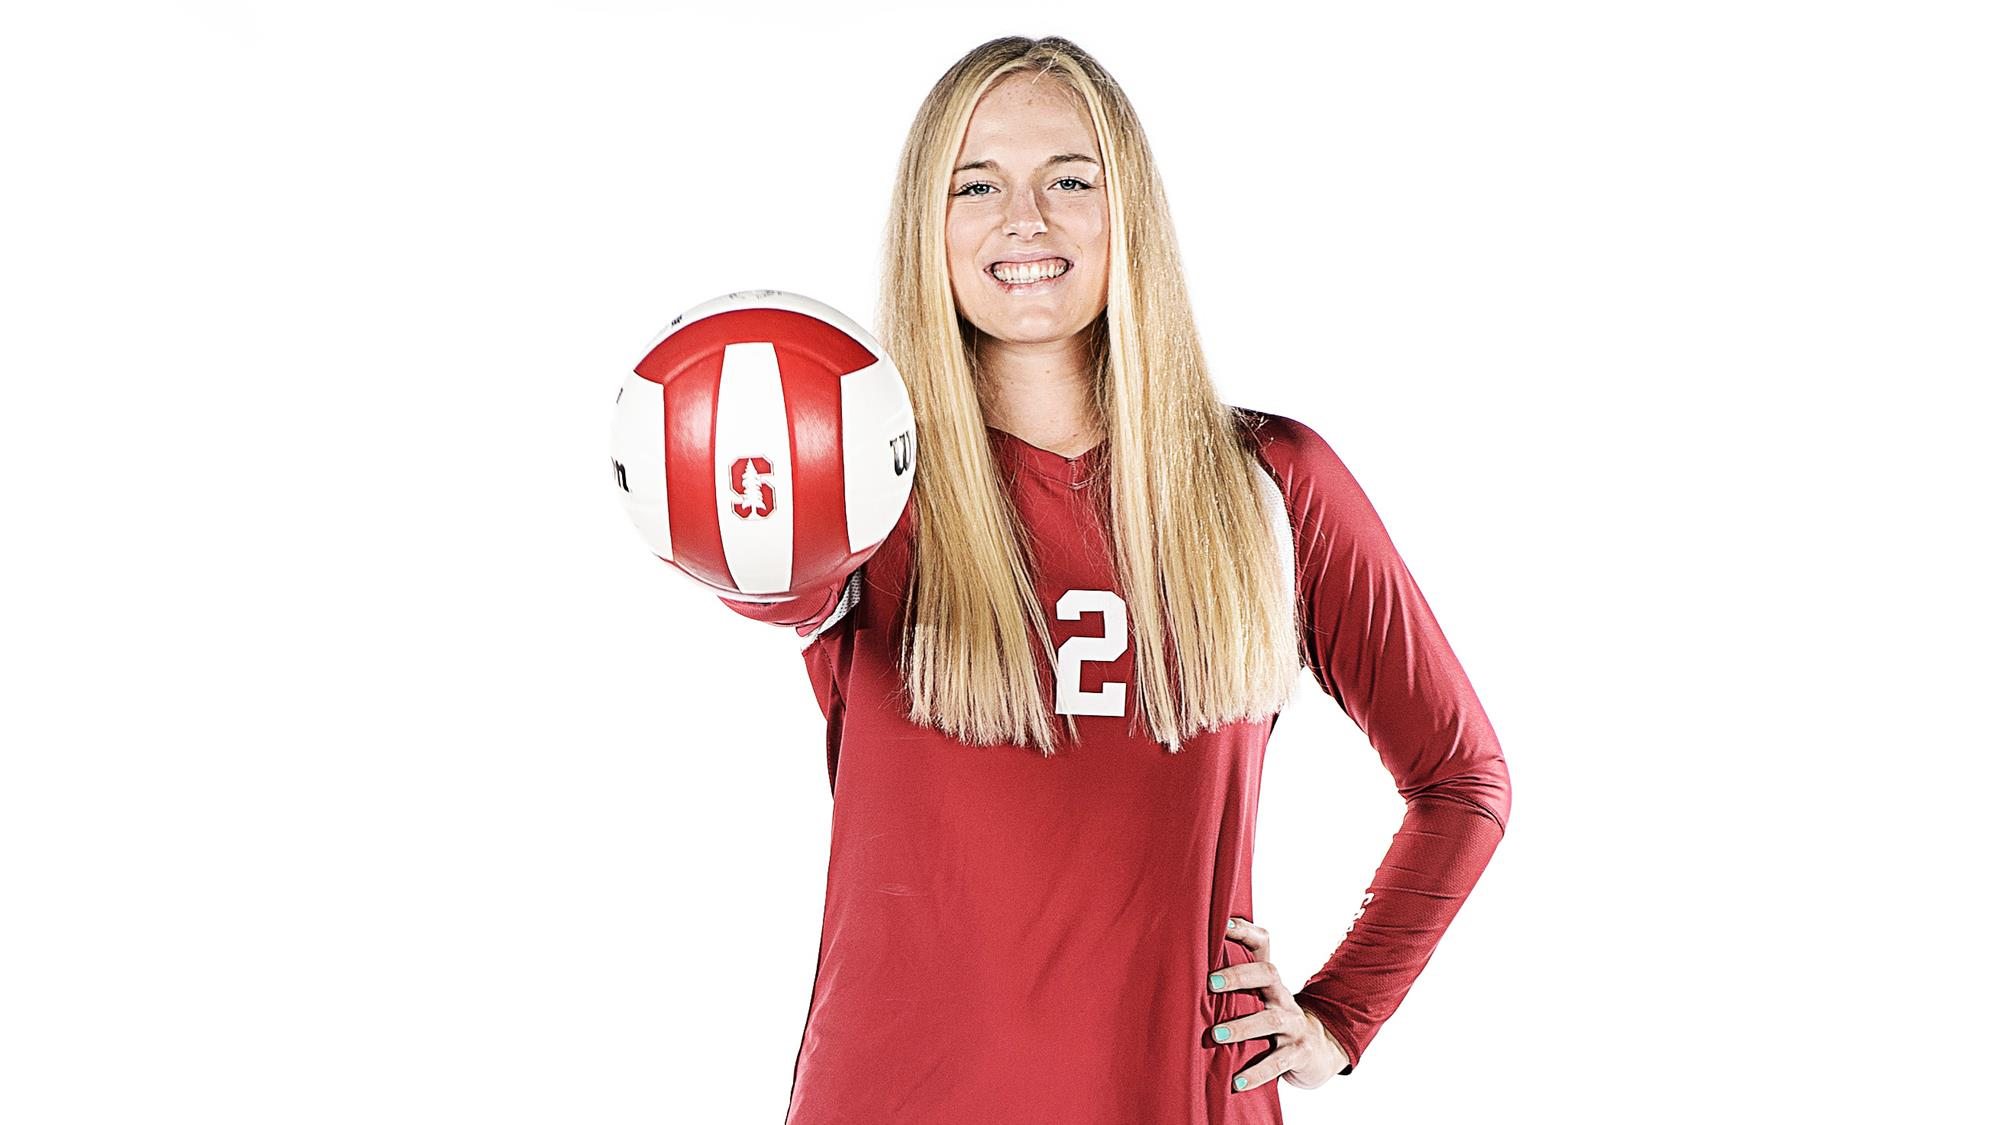 Kathryn Plummer - 2017 Women's Volleyball Roster - Stanford University